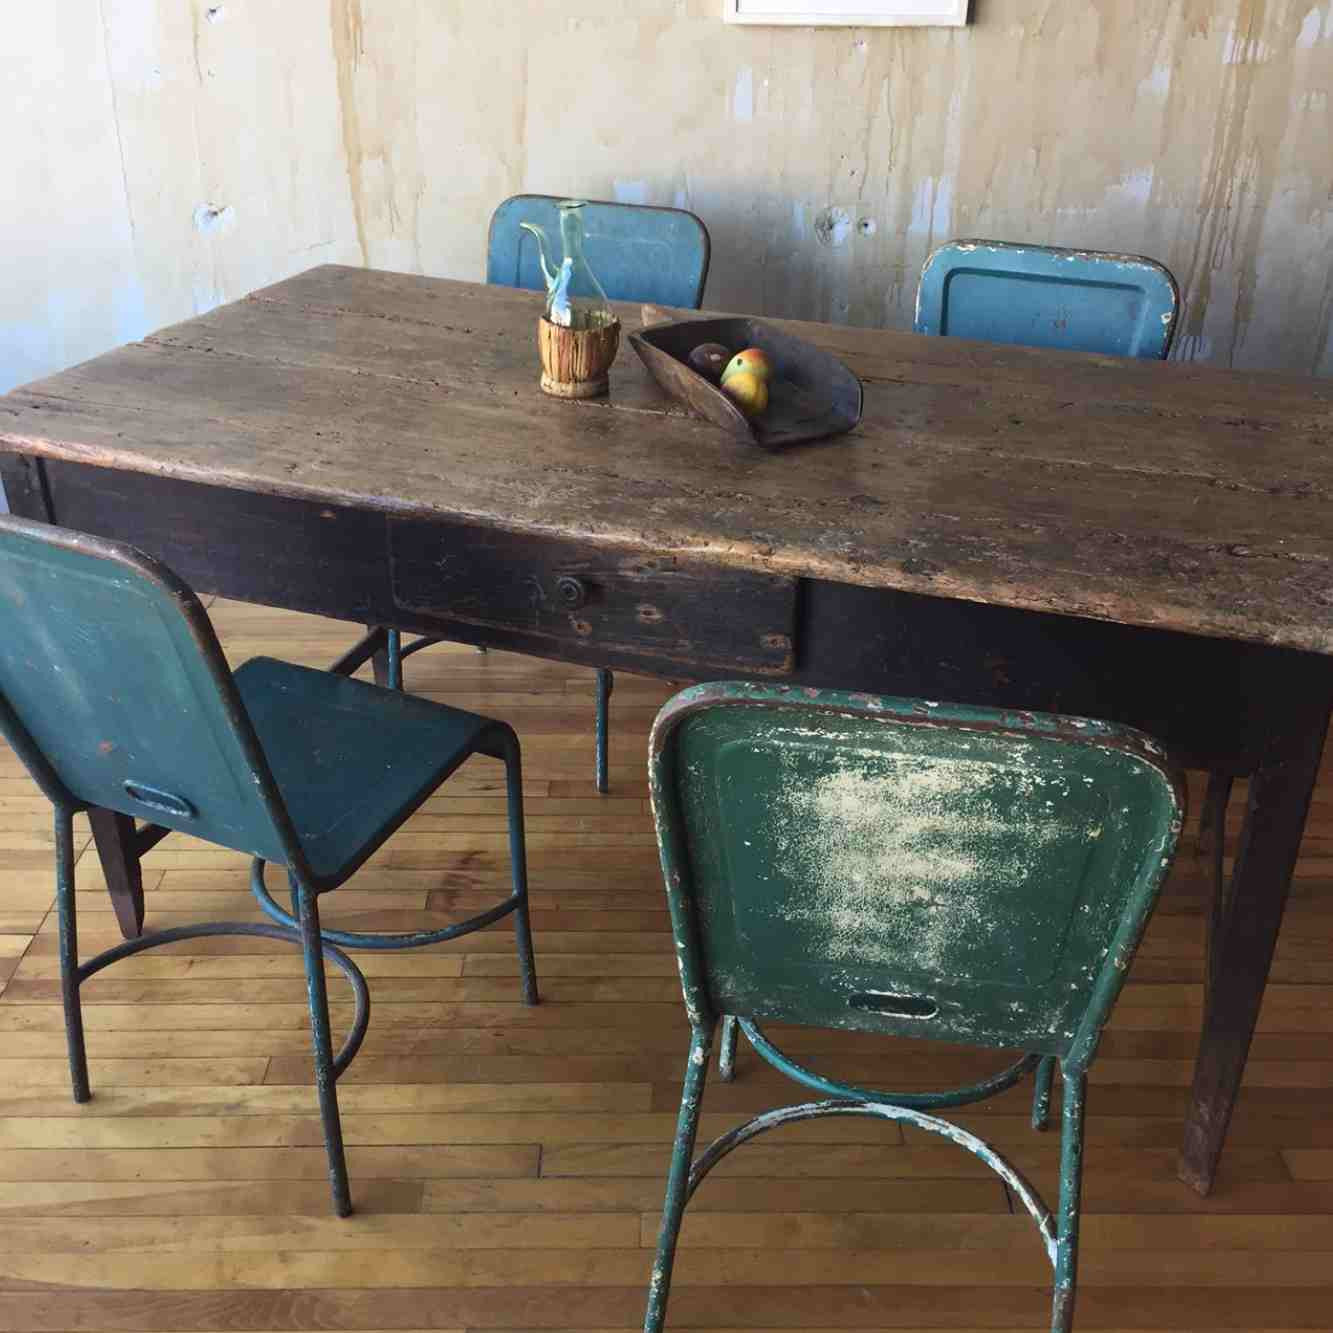 Kitchen Table Into Desk: Rustic Antique Table